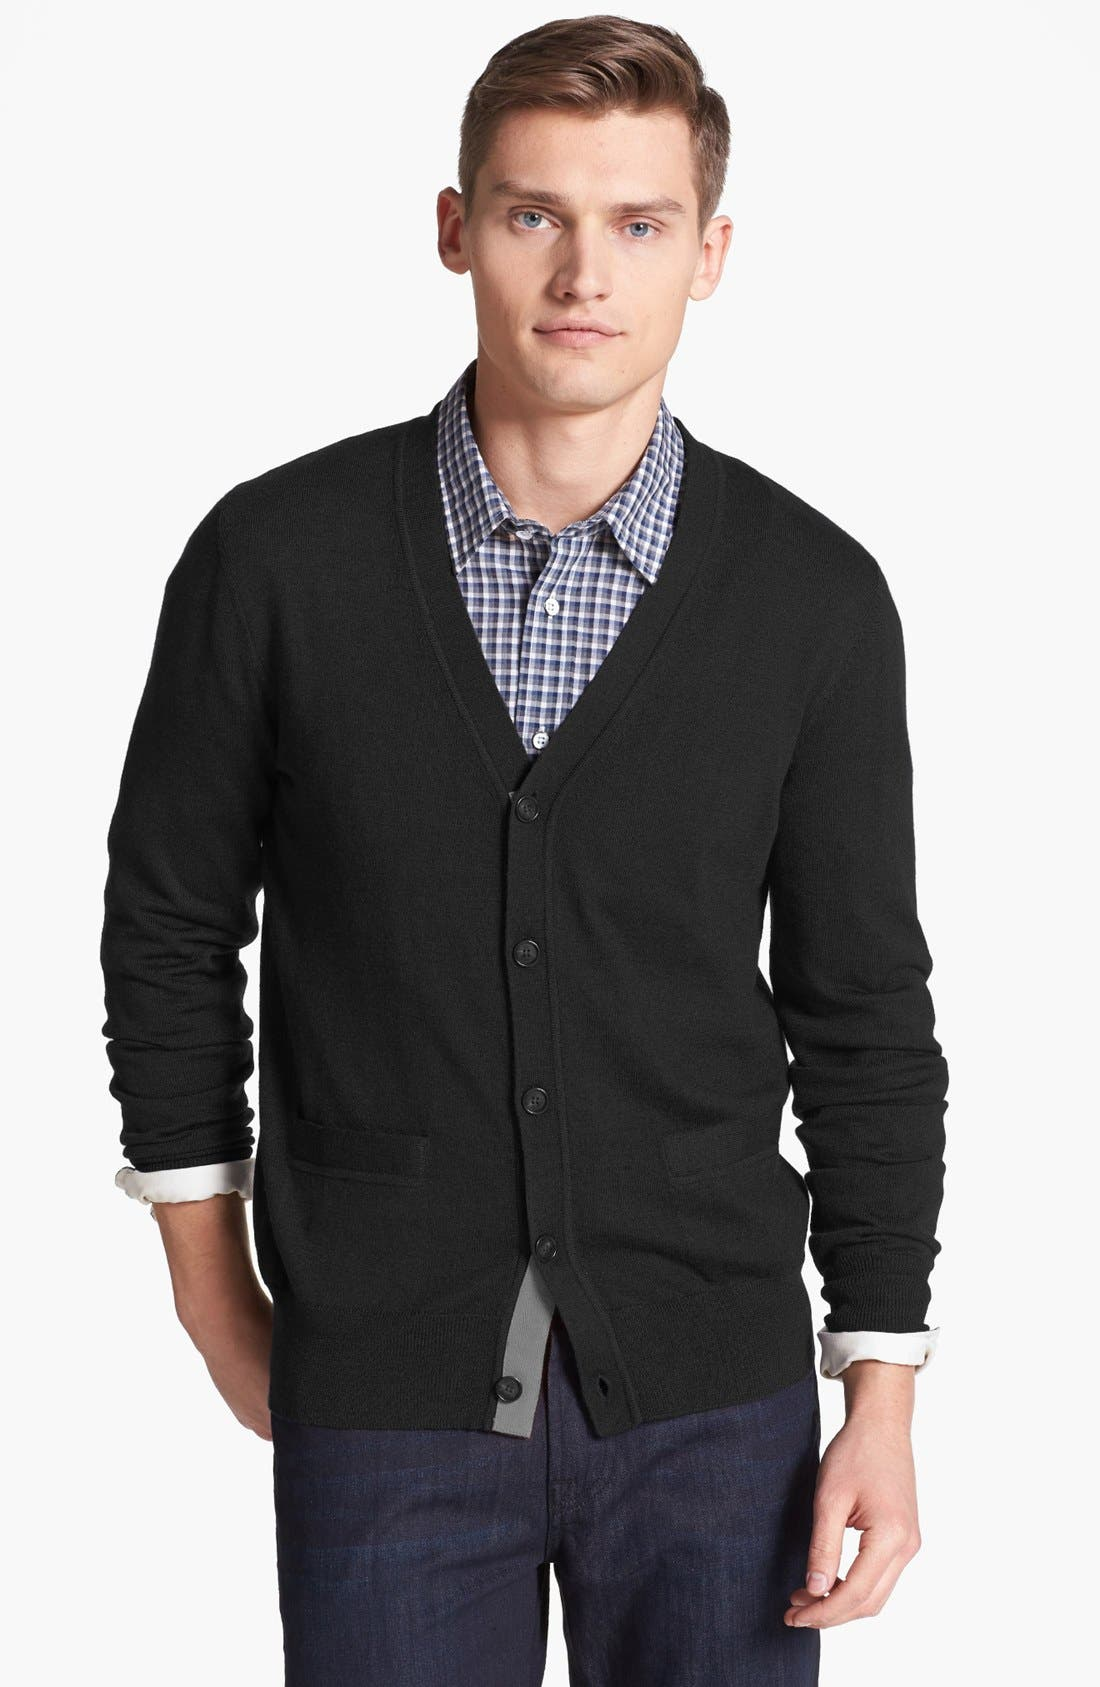 JACK SPADE 'Brockman' Merino Wool Cardigan, Main, color, 001